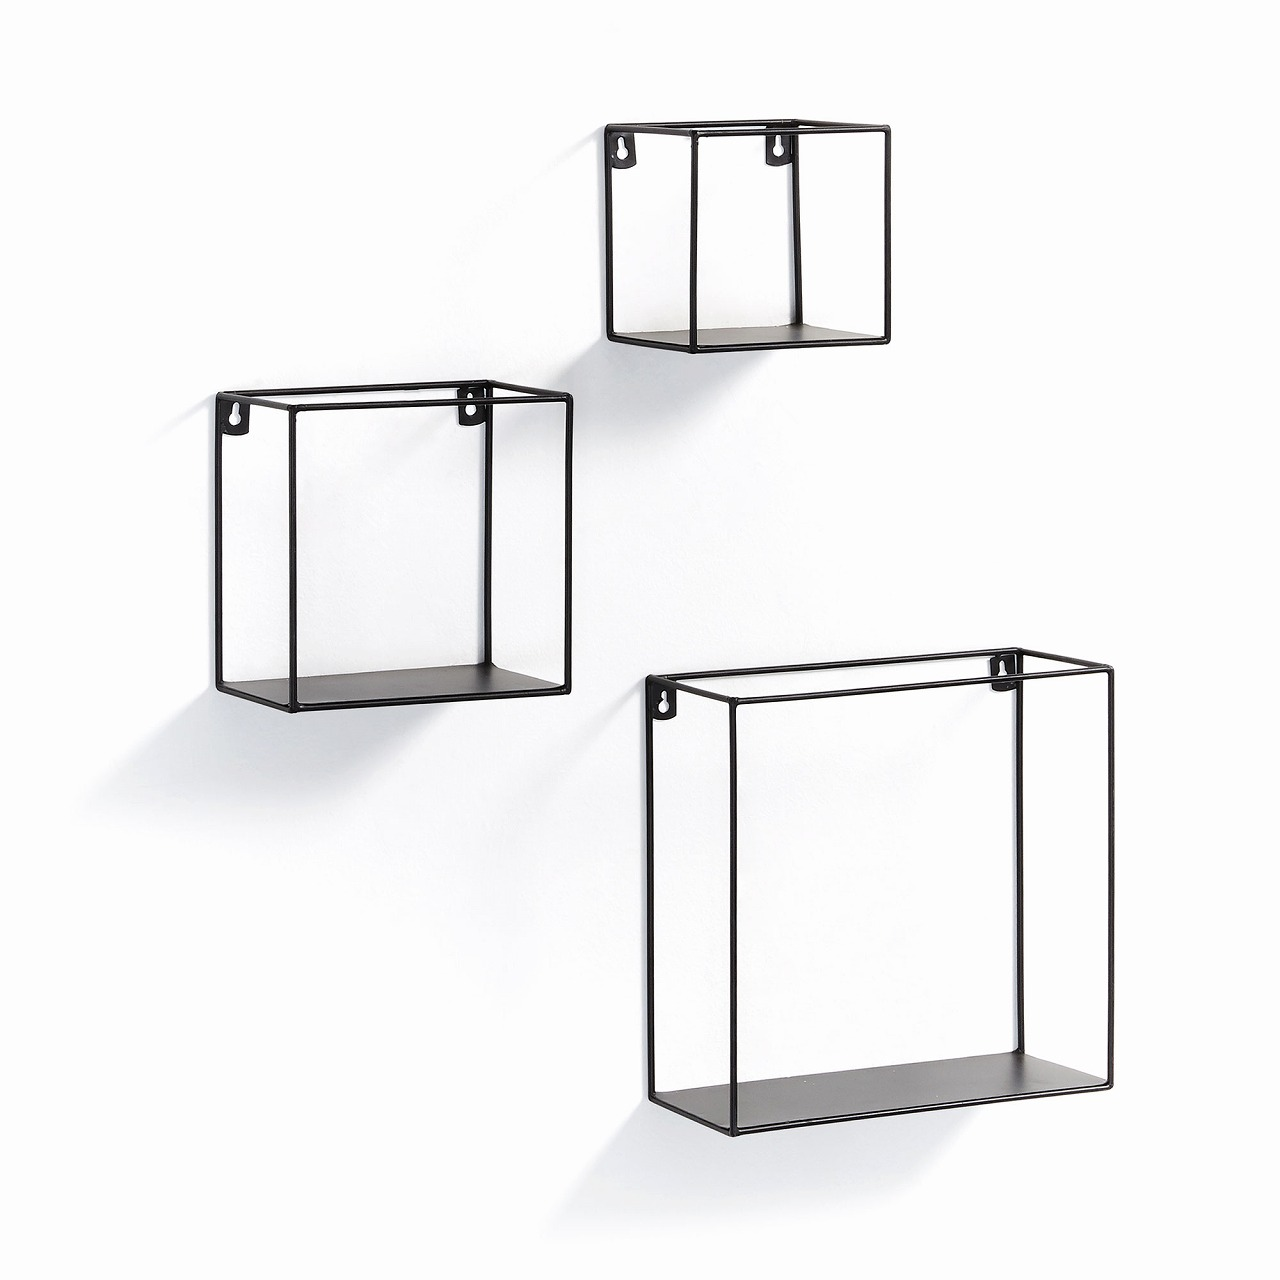 NETH Set 3 wall shelf metal black